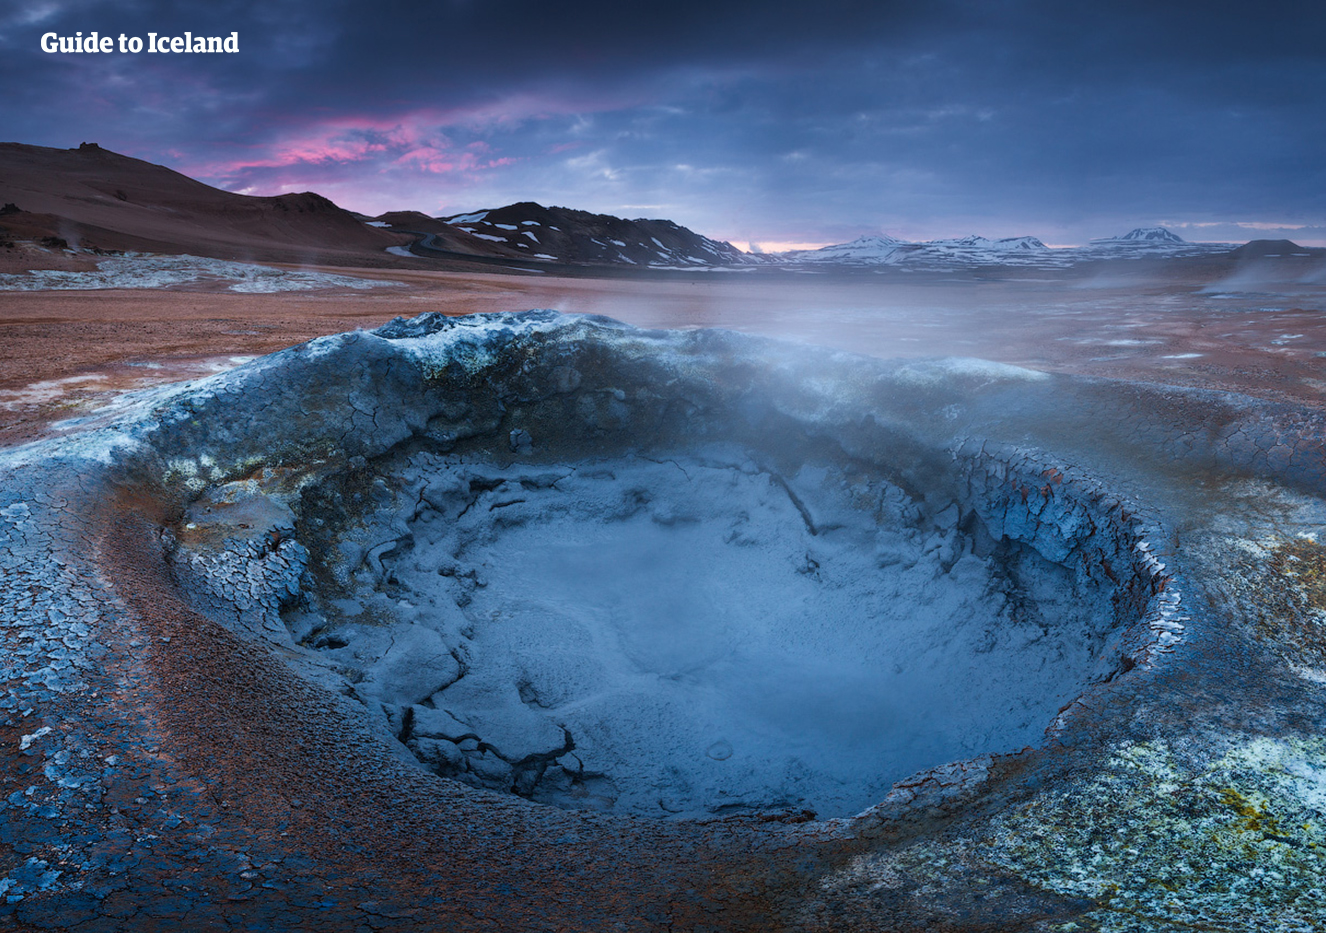 Lake Myvatn has a number of nearby geothermal areas.